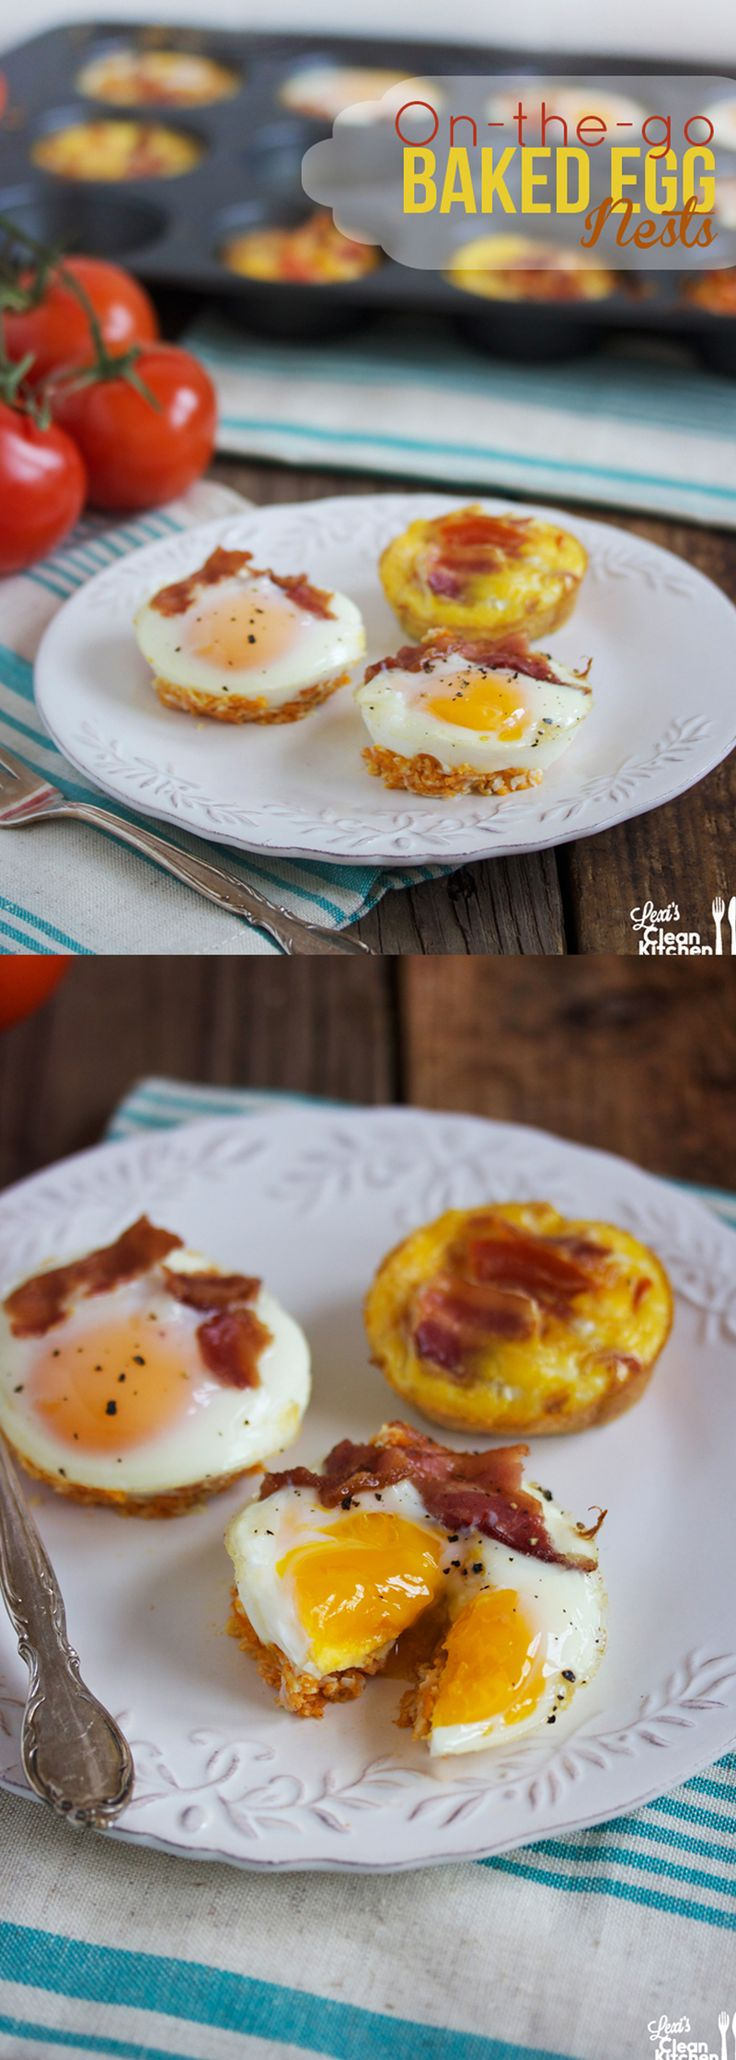 On-The-Go Baked Egg Nests {Two Ways}